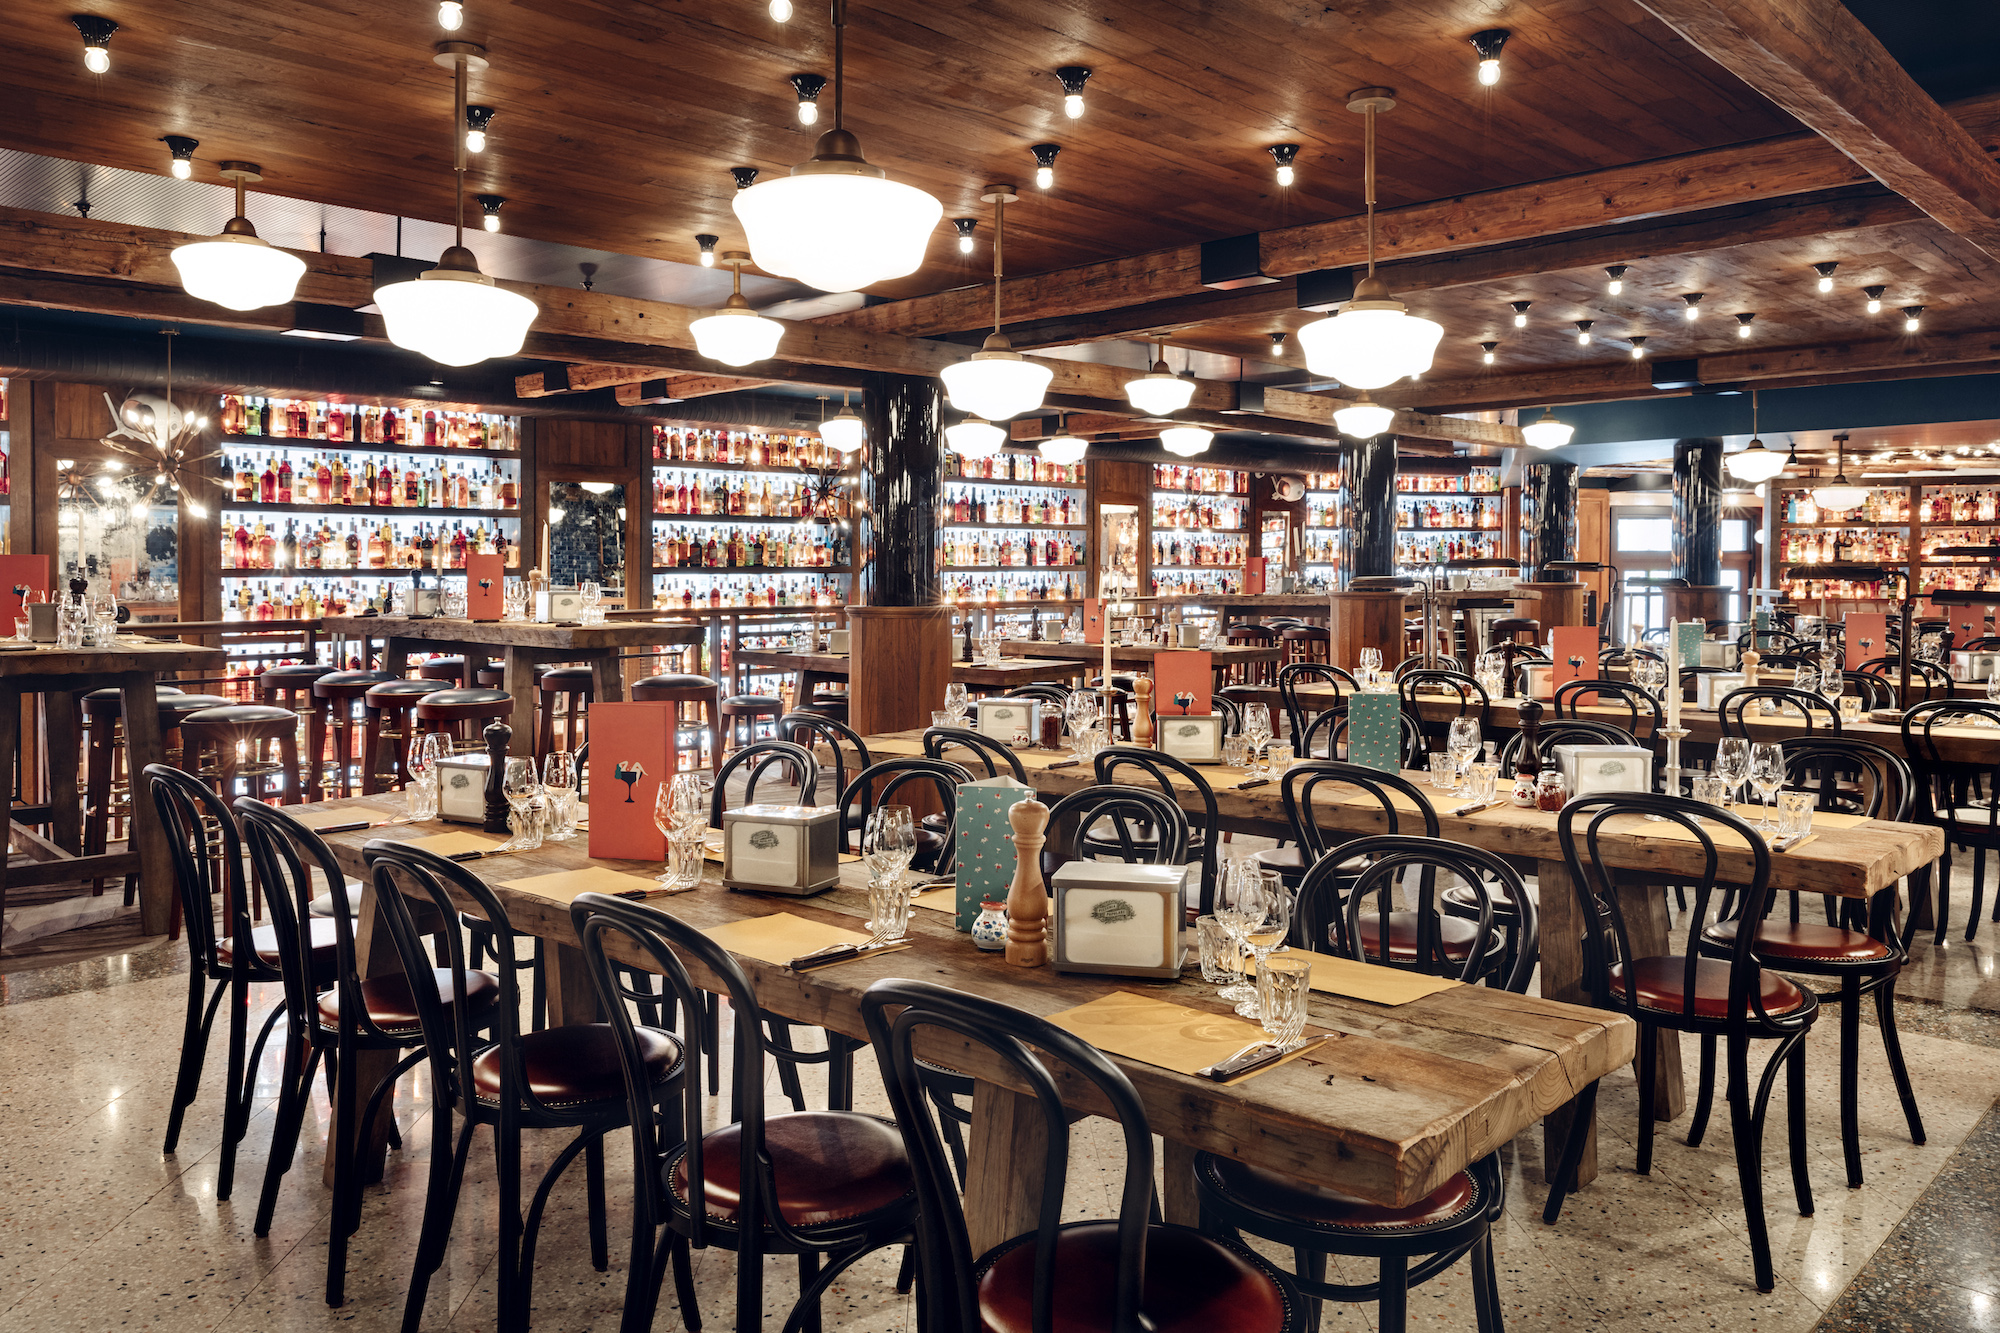 The Big Mamma Group offers Fresh, Authentic Italian Dining in Paris, in trendy surroundings like this space with back-lit walls lined by spirits for cocktails.